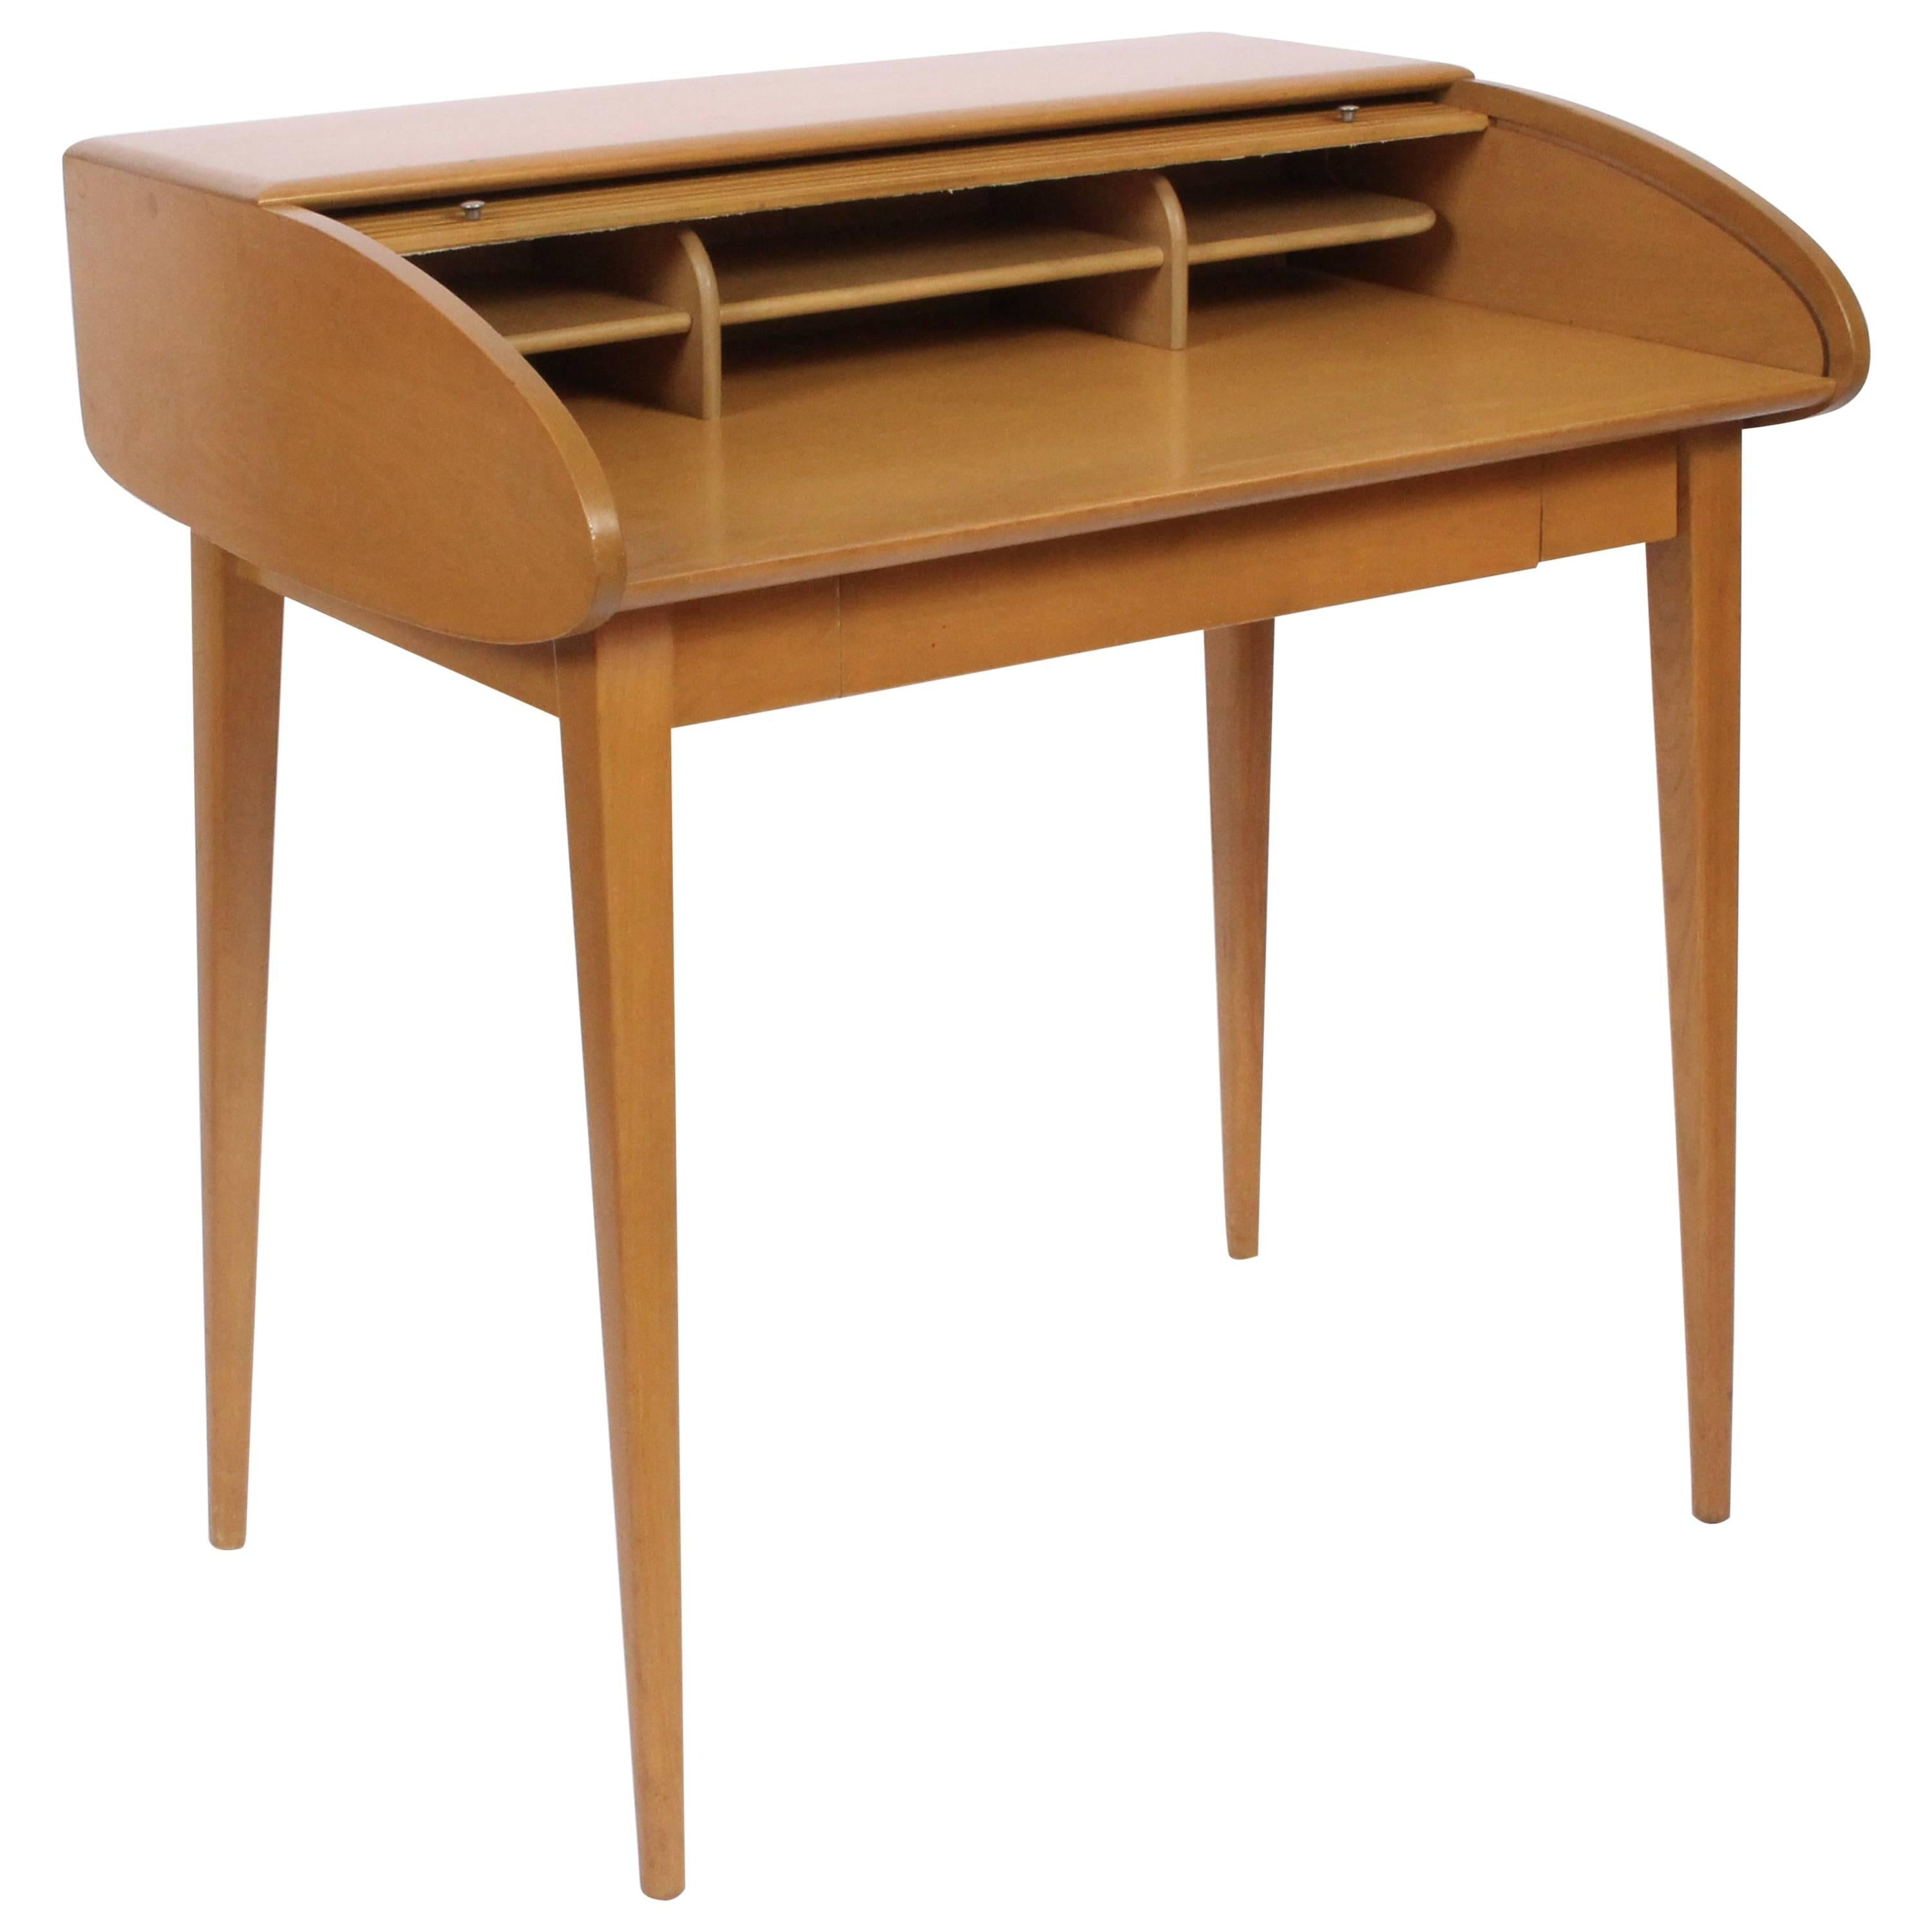 Heywood Wakefield Streamline Maple Tambour Desk, 1960s